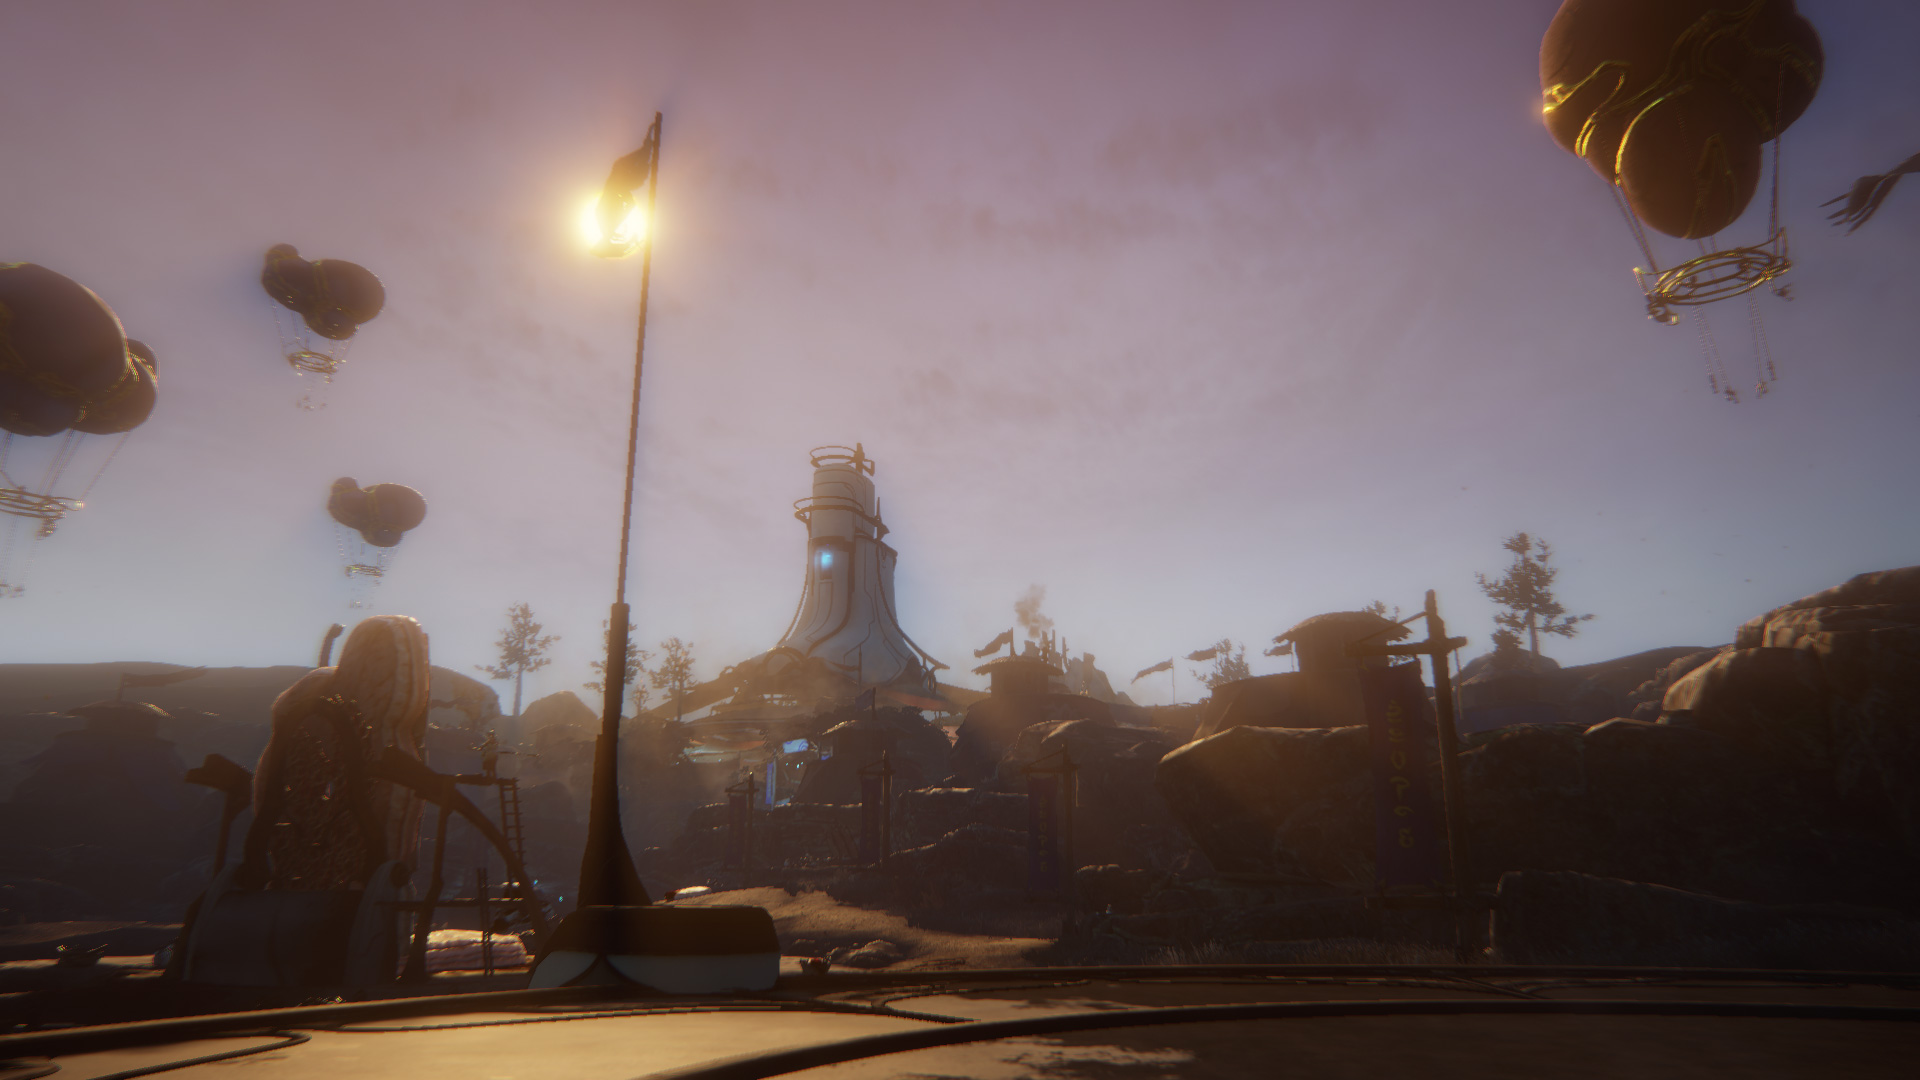 Warframe getting MMO style Landscapes starting with the Plains of Eideolon